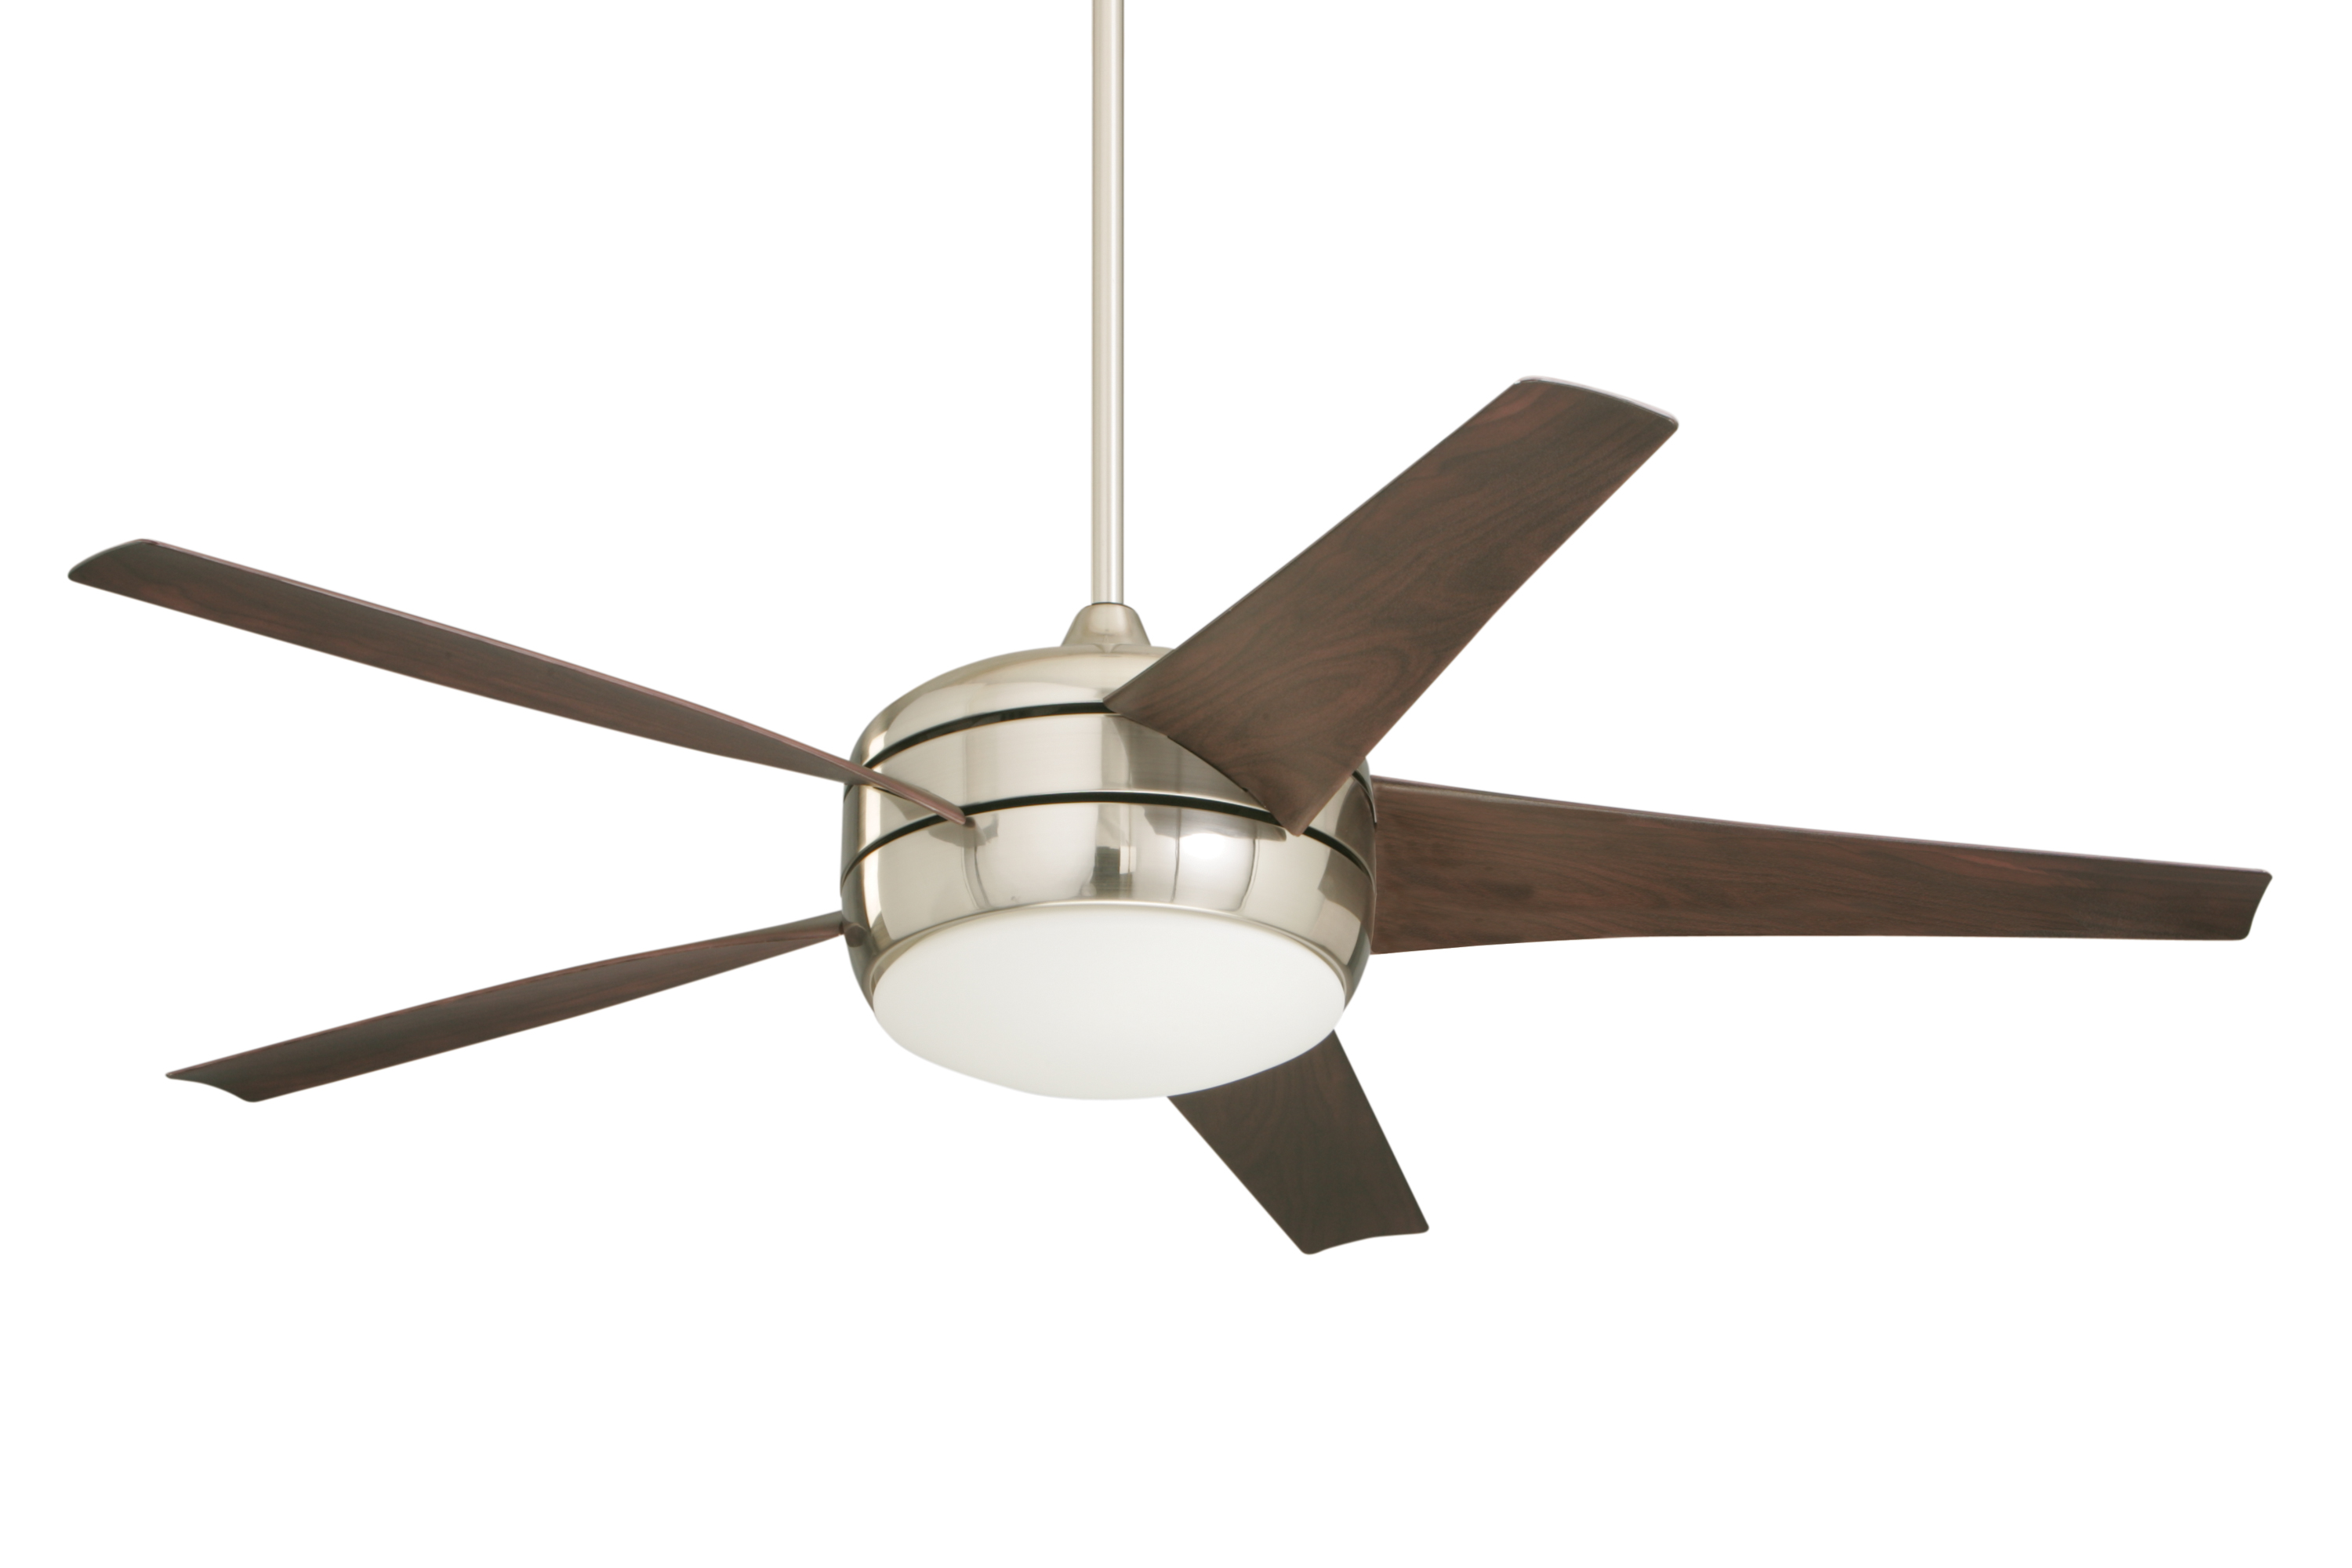 Lumens Com Highlights Dc Motor Ceiling Fans Among Upcoming Home Design Trends